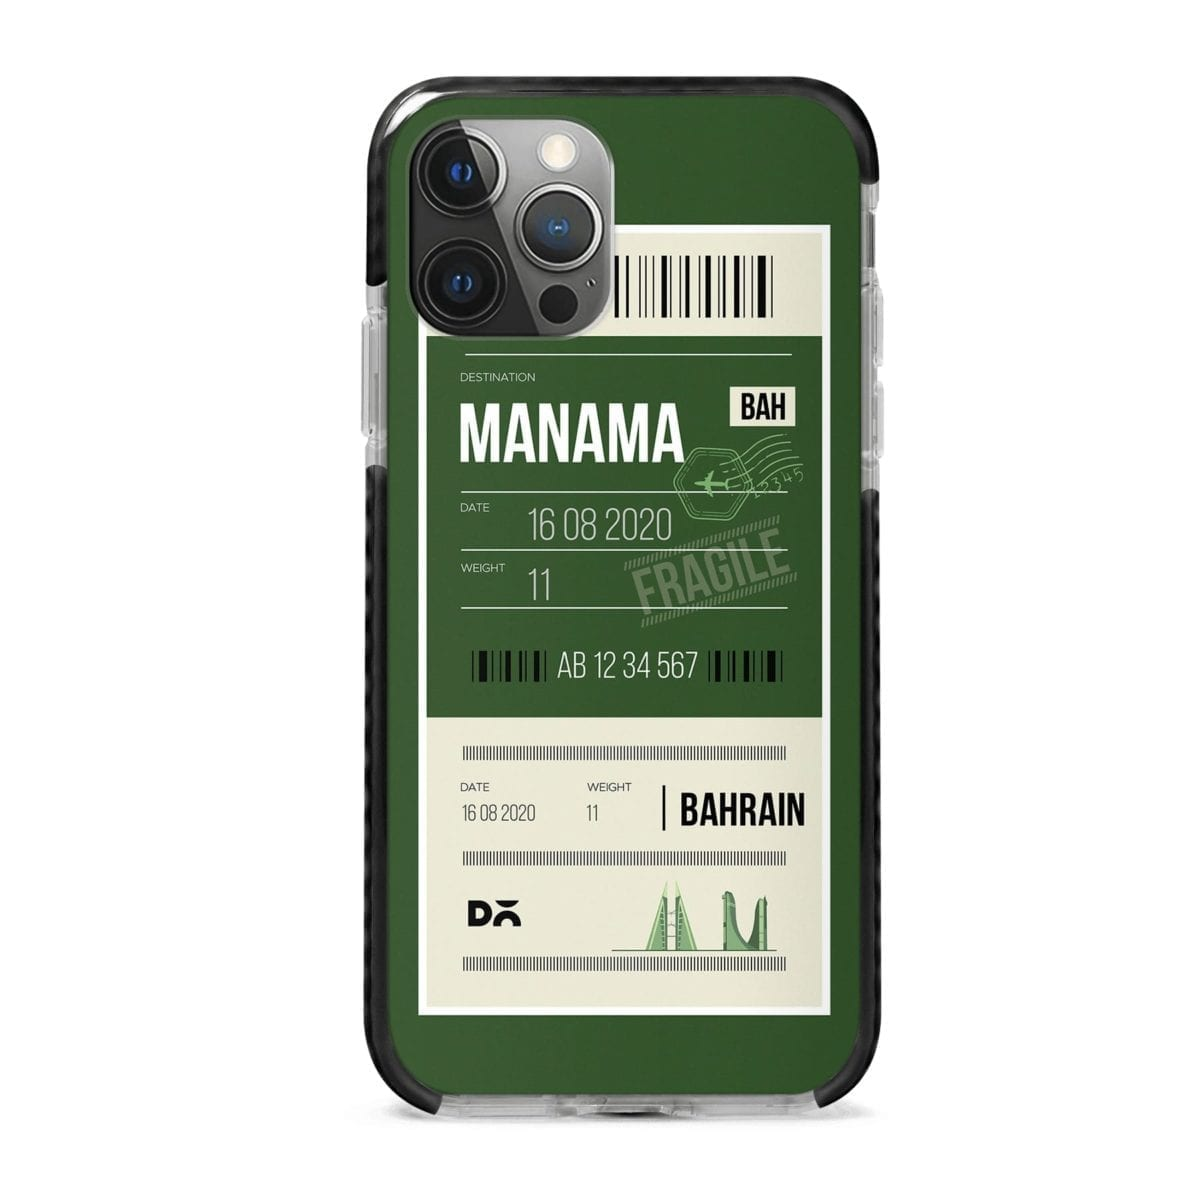 Manama Bahrain City Stride Case Cover for Apple iPhone 12 Pro and Apple iPhone 12 Pro Max with great design and shock proof | Klippik | Online Shopping | Kuwait UAE Saudi